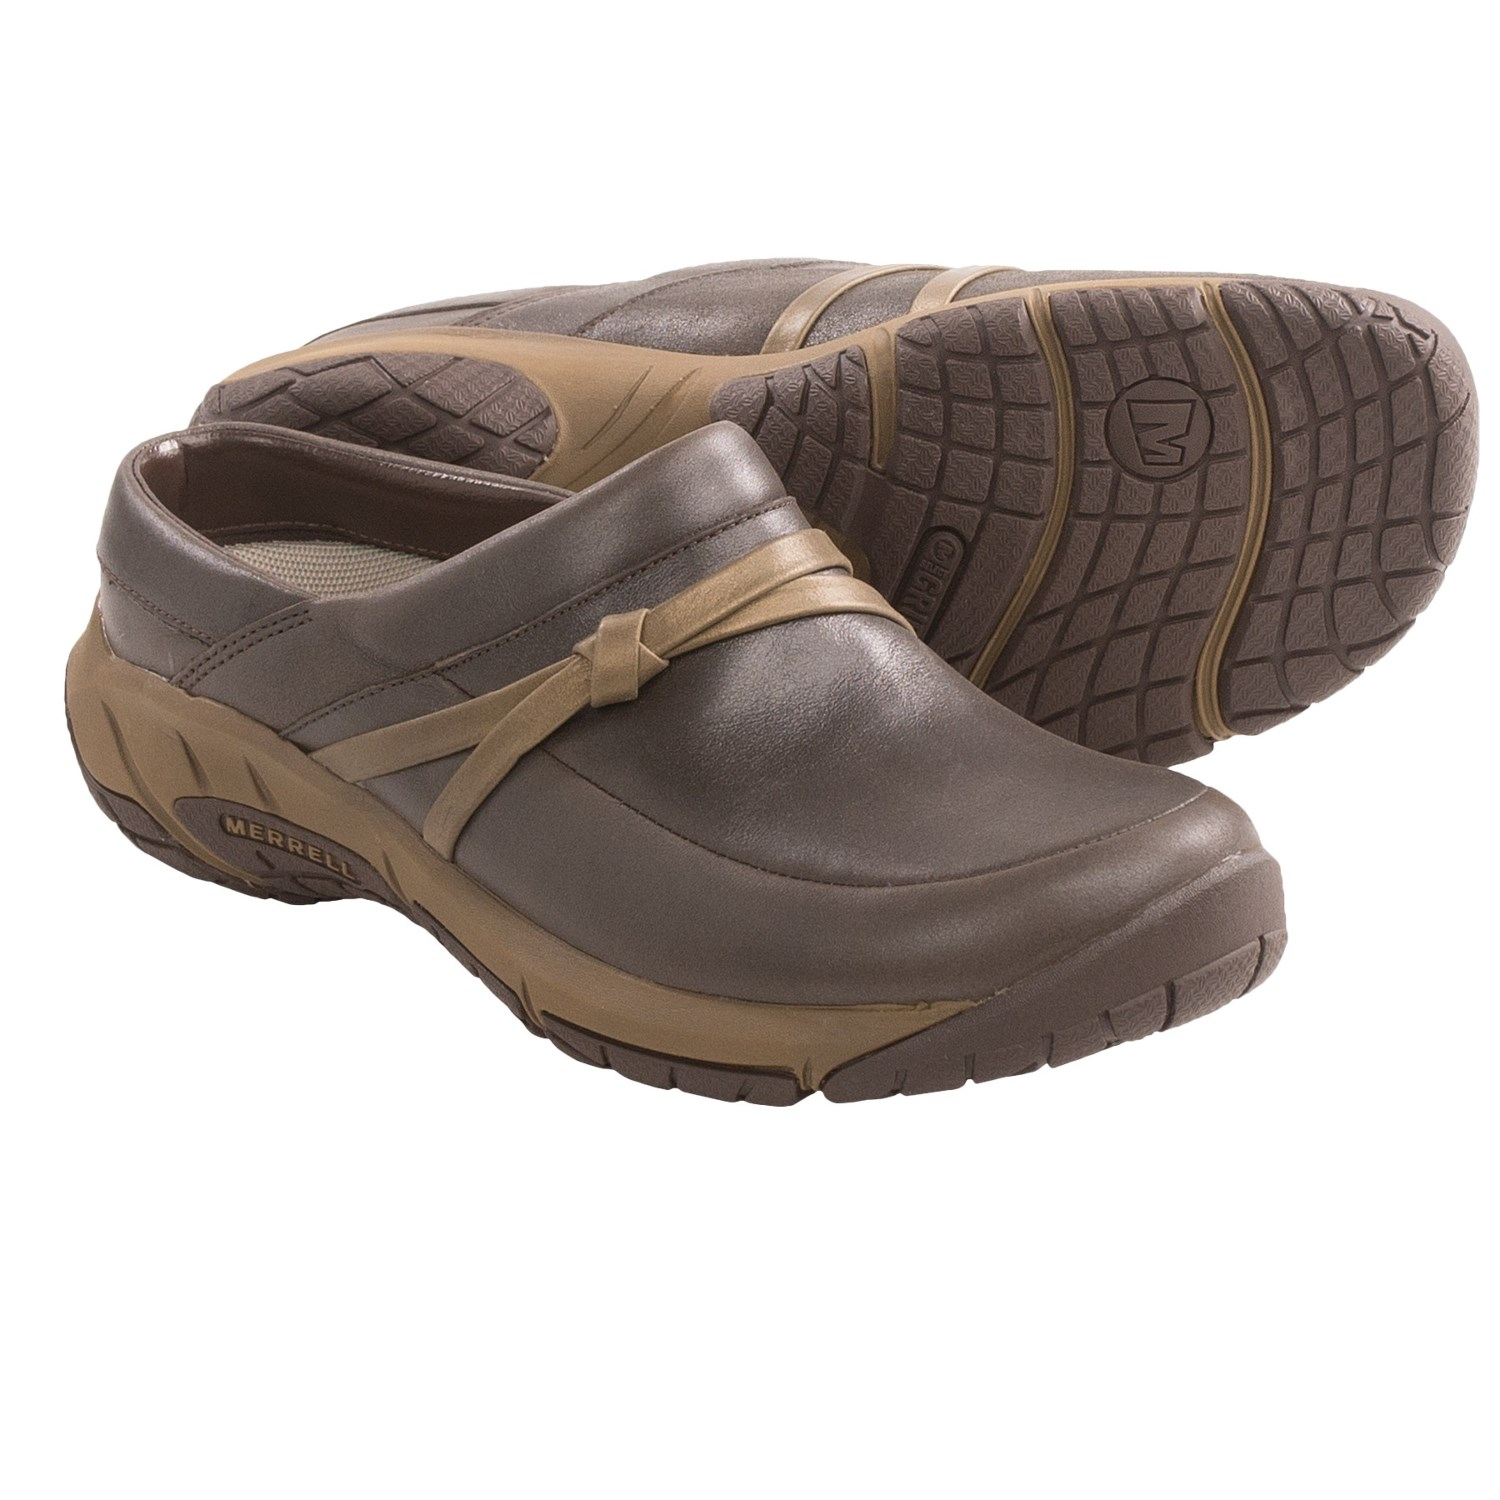 Merrill womens shoes Shoes online for women